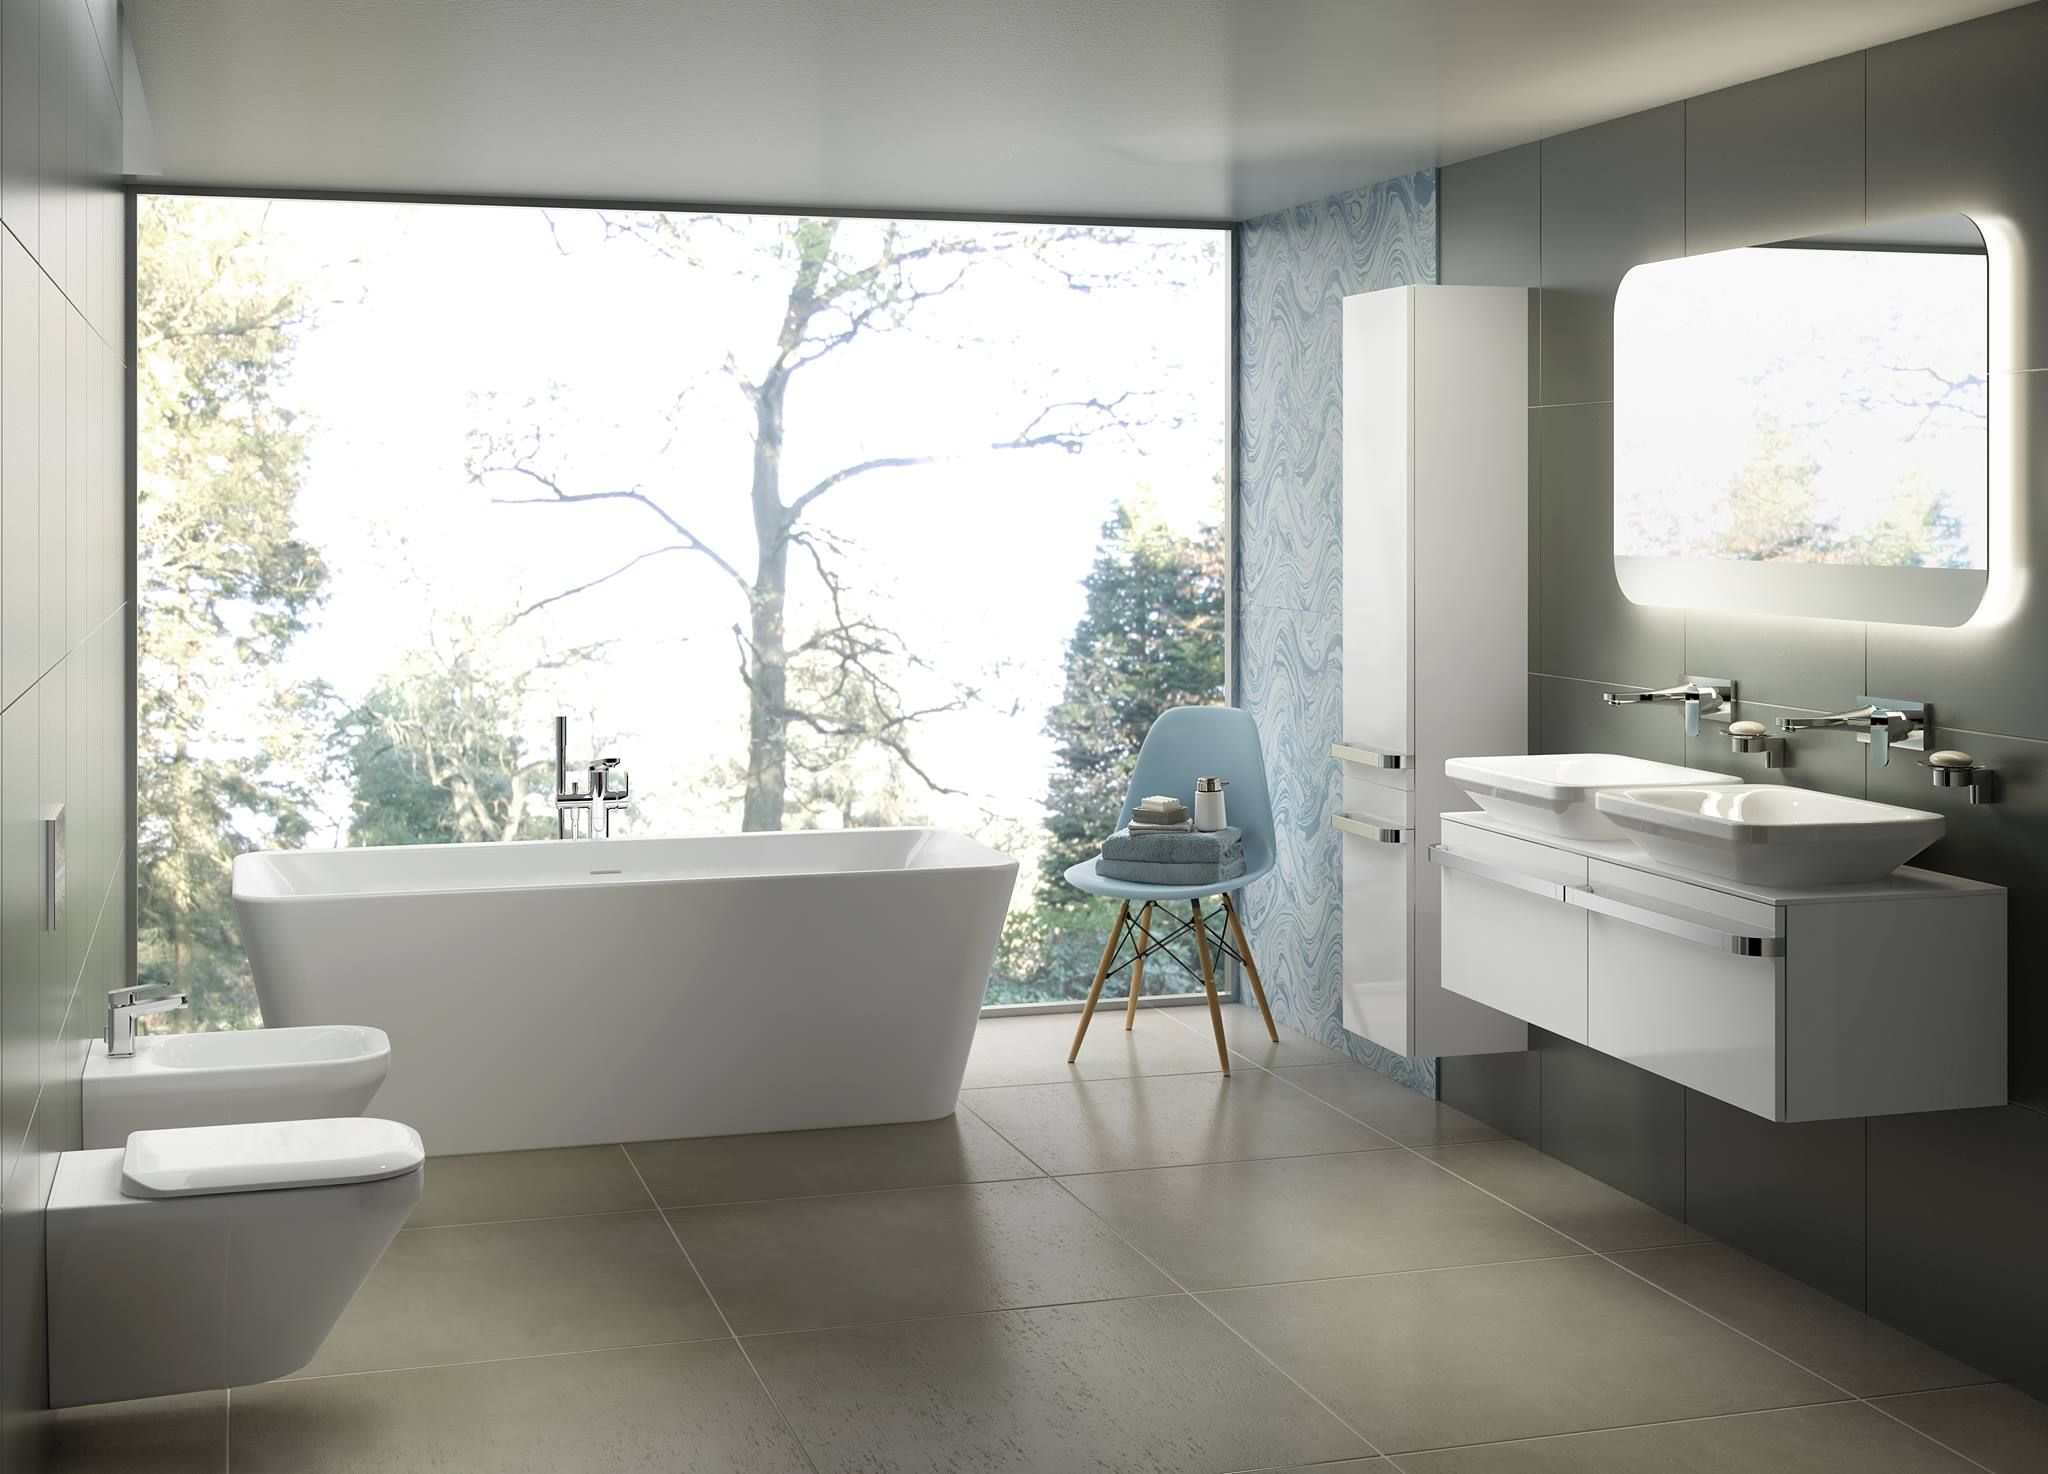 Immerse yourself in luxury with an @idealstandarduk #bathroom ...